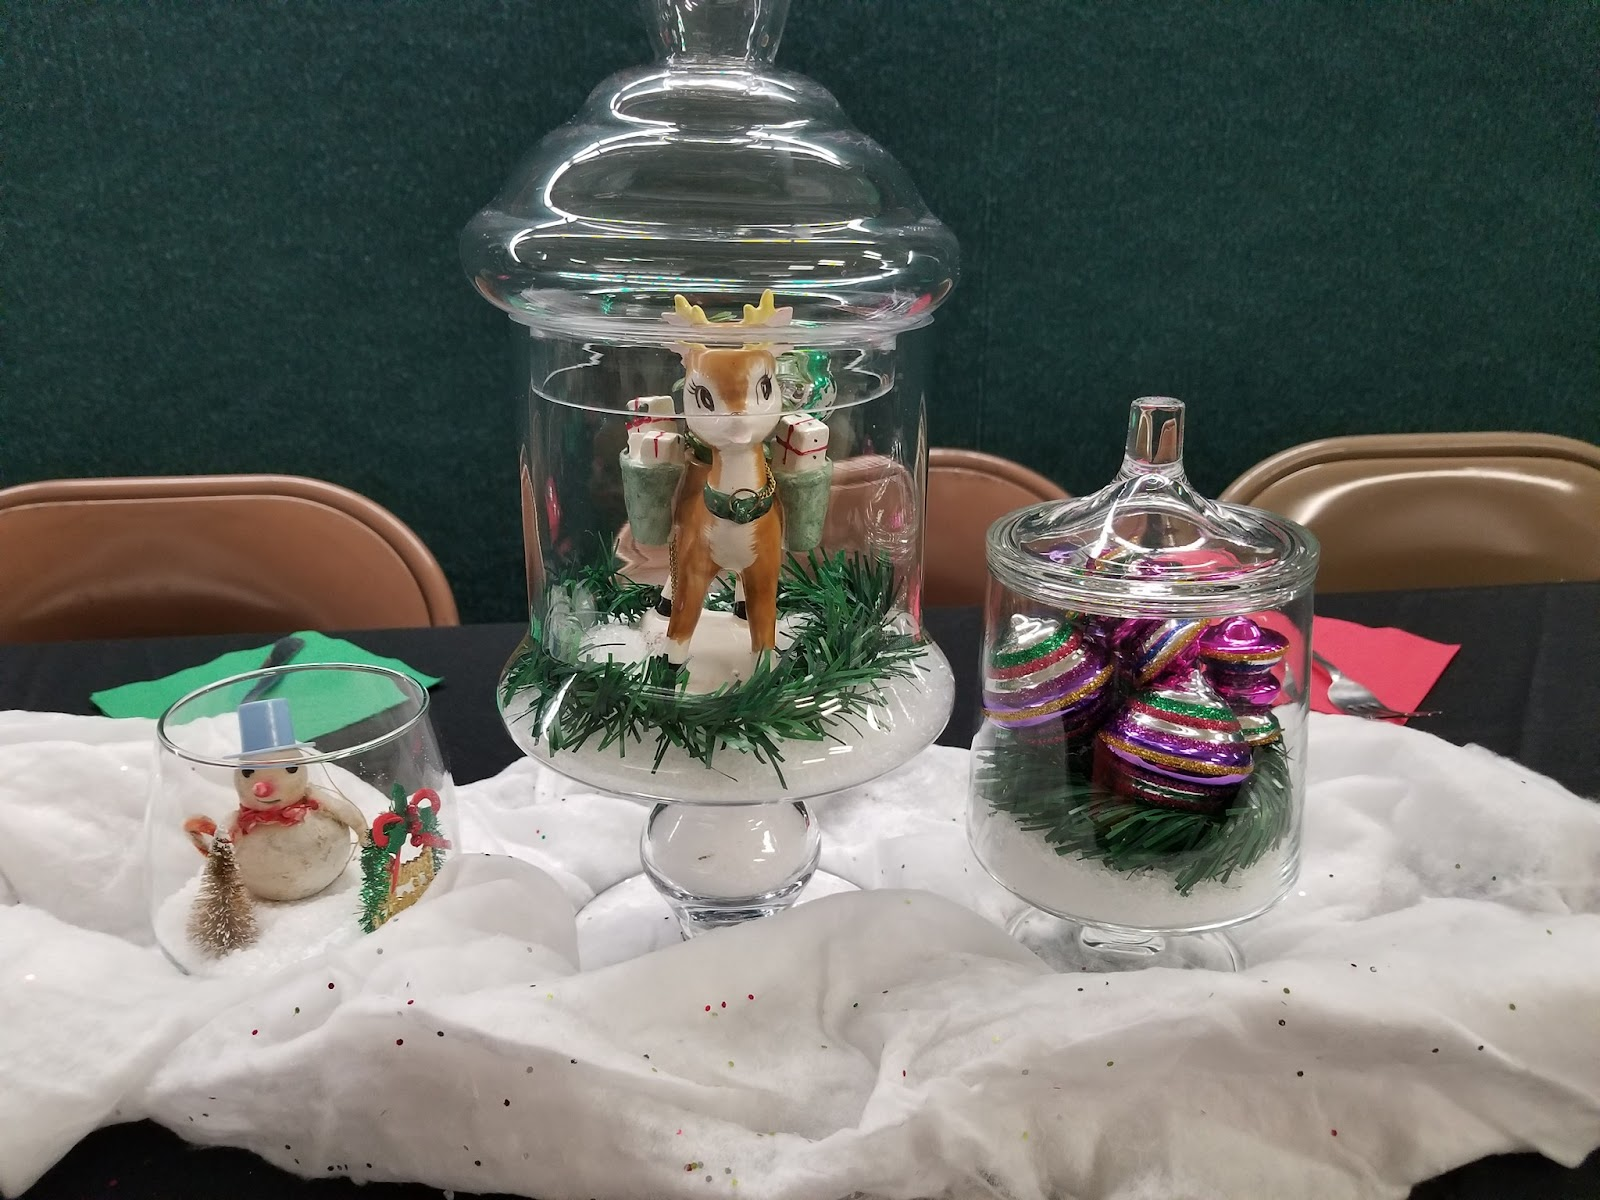 Several center pieces featuring holiday figurines like snowmen and reindeer sit on a table decorated with white fluff to look like snow.